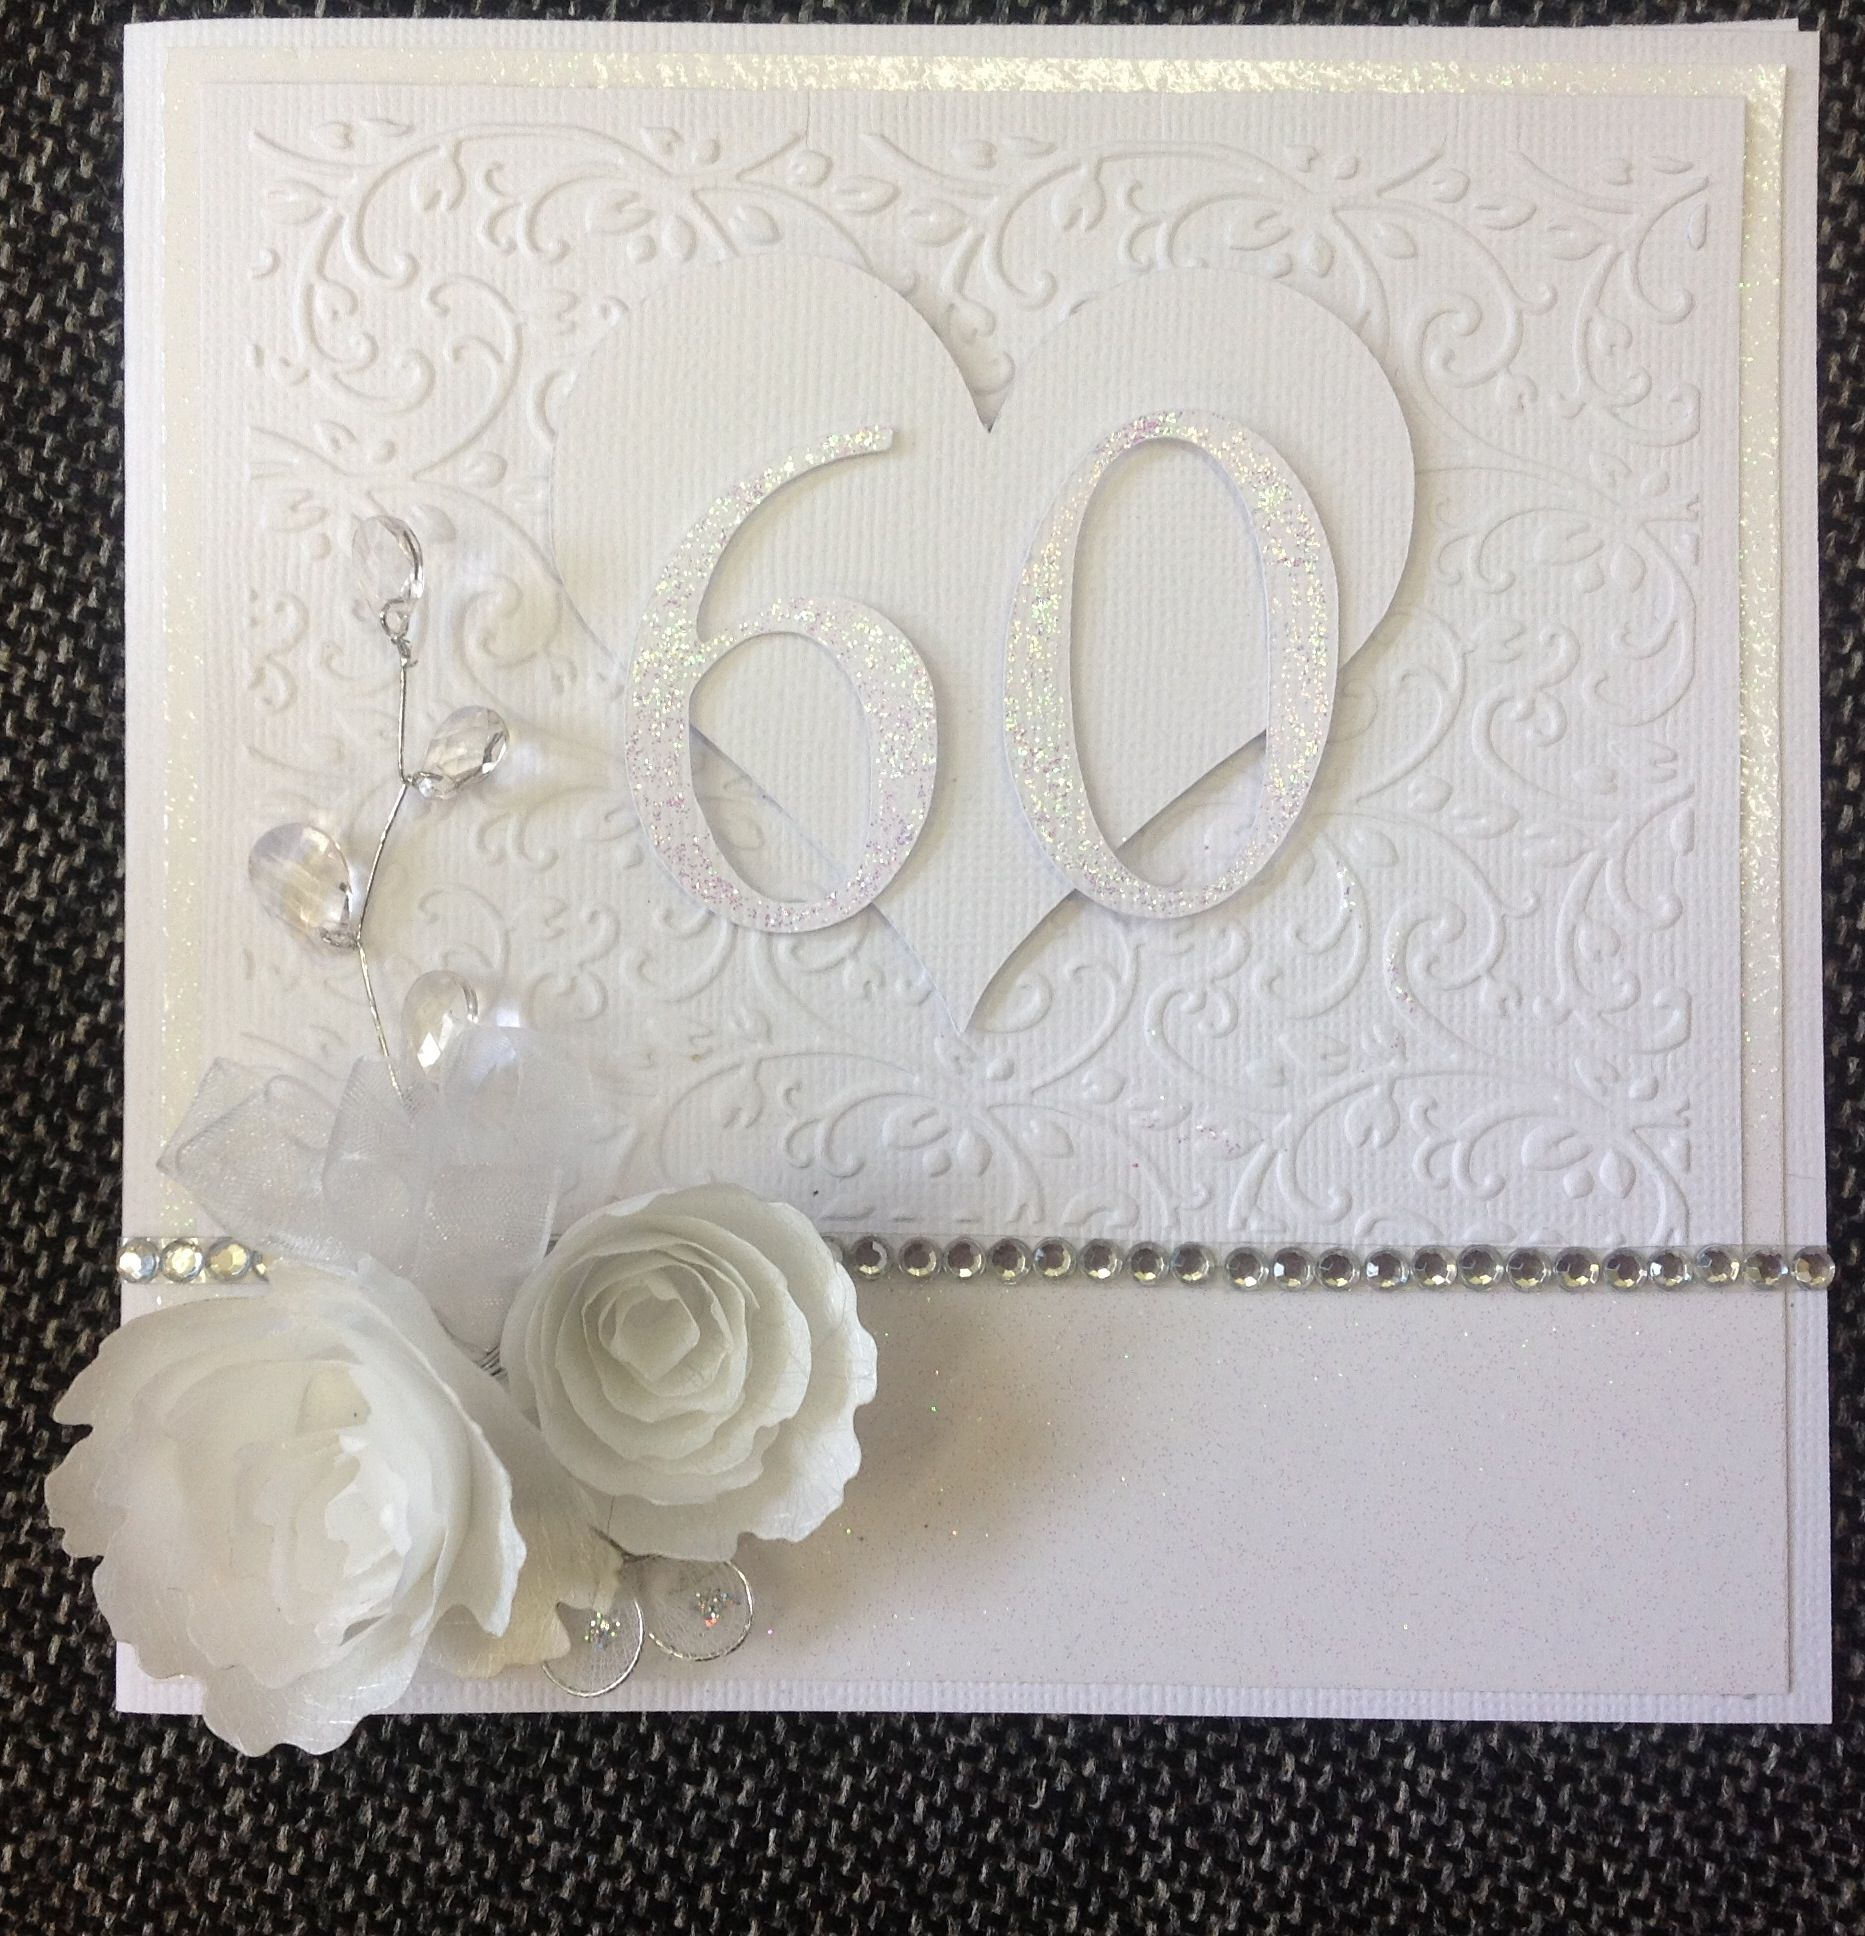 60th Wedding Anniversary Card Diamond Wedding Anniversary